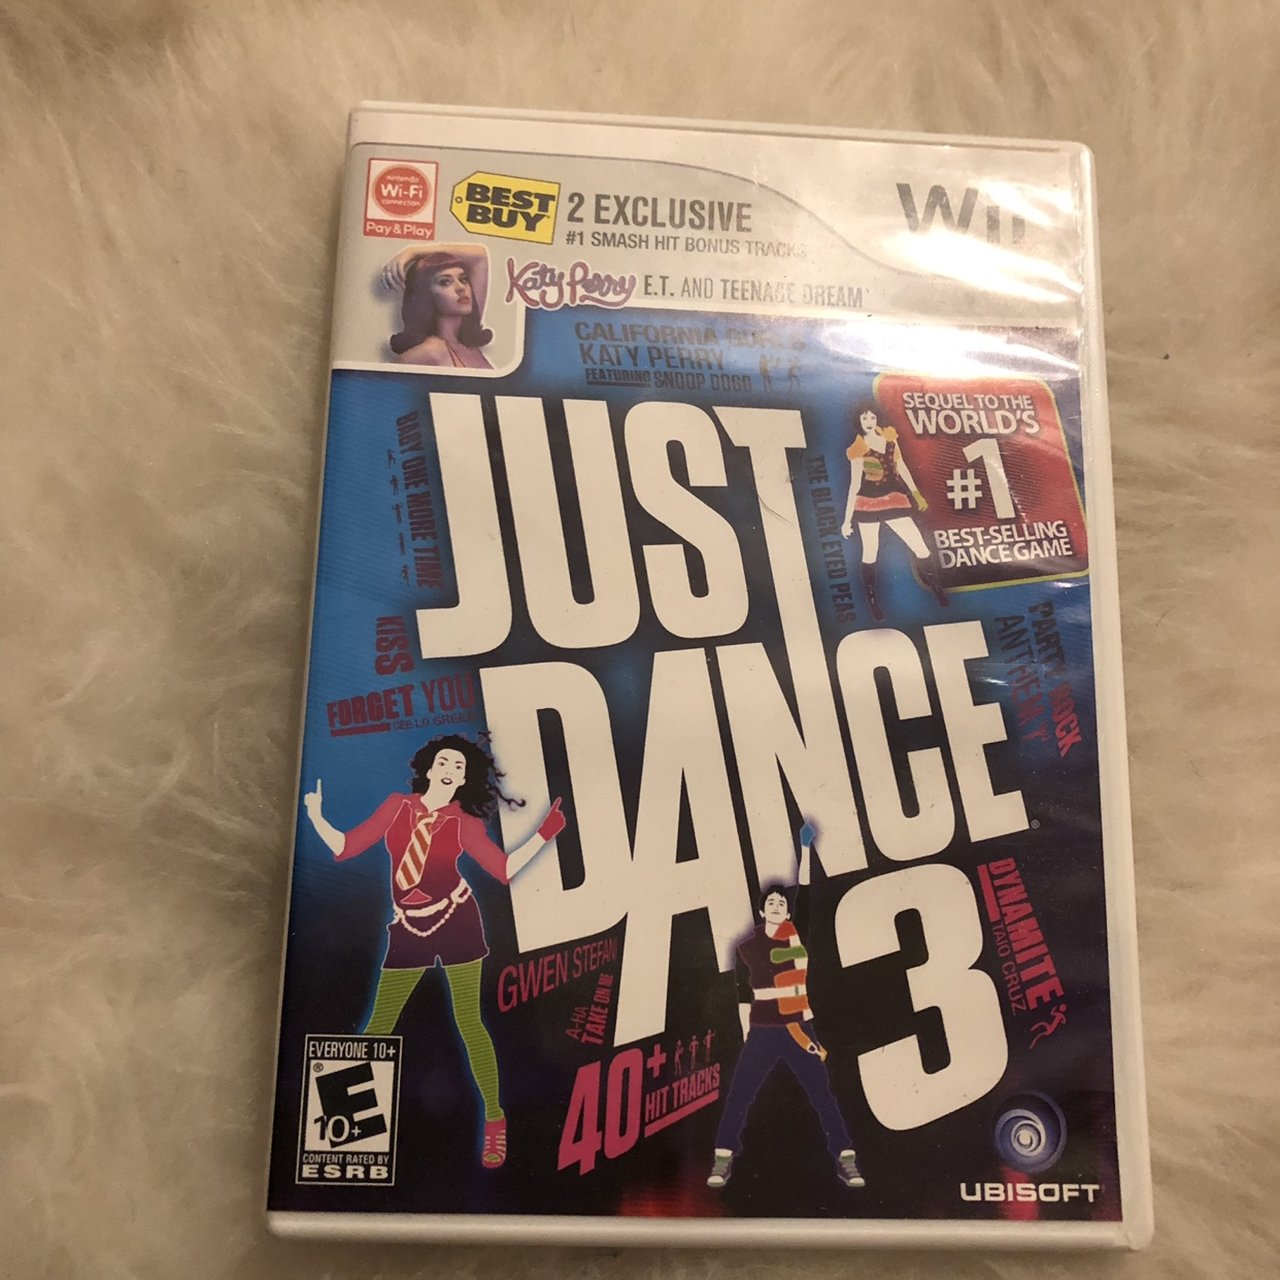 Just dance 3 wii Good condition Ps4 ps2    - Depop